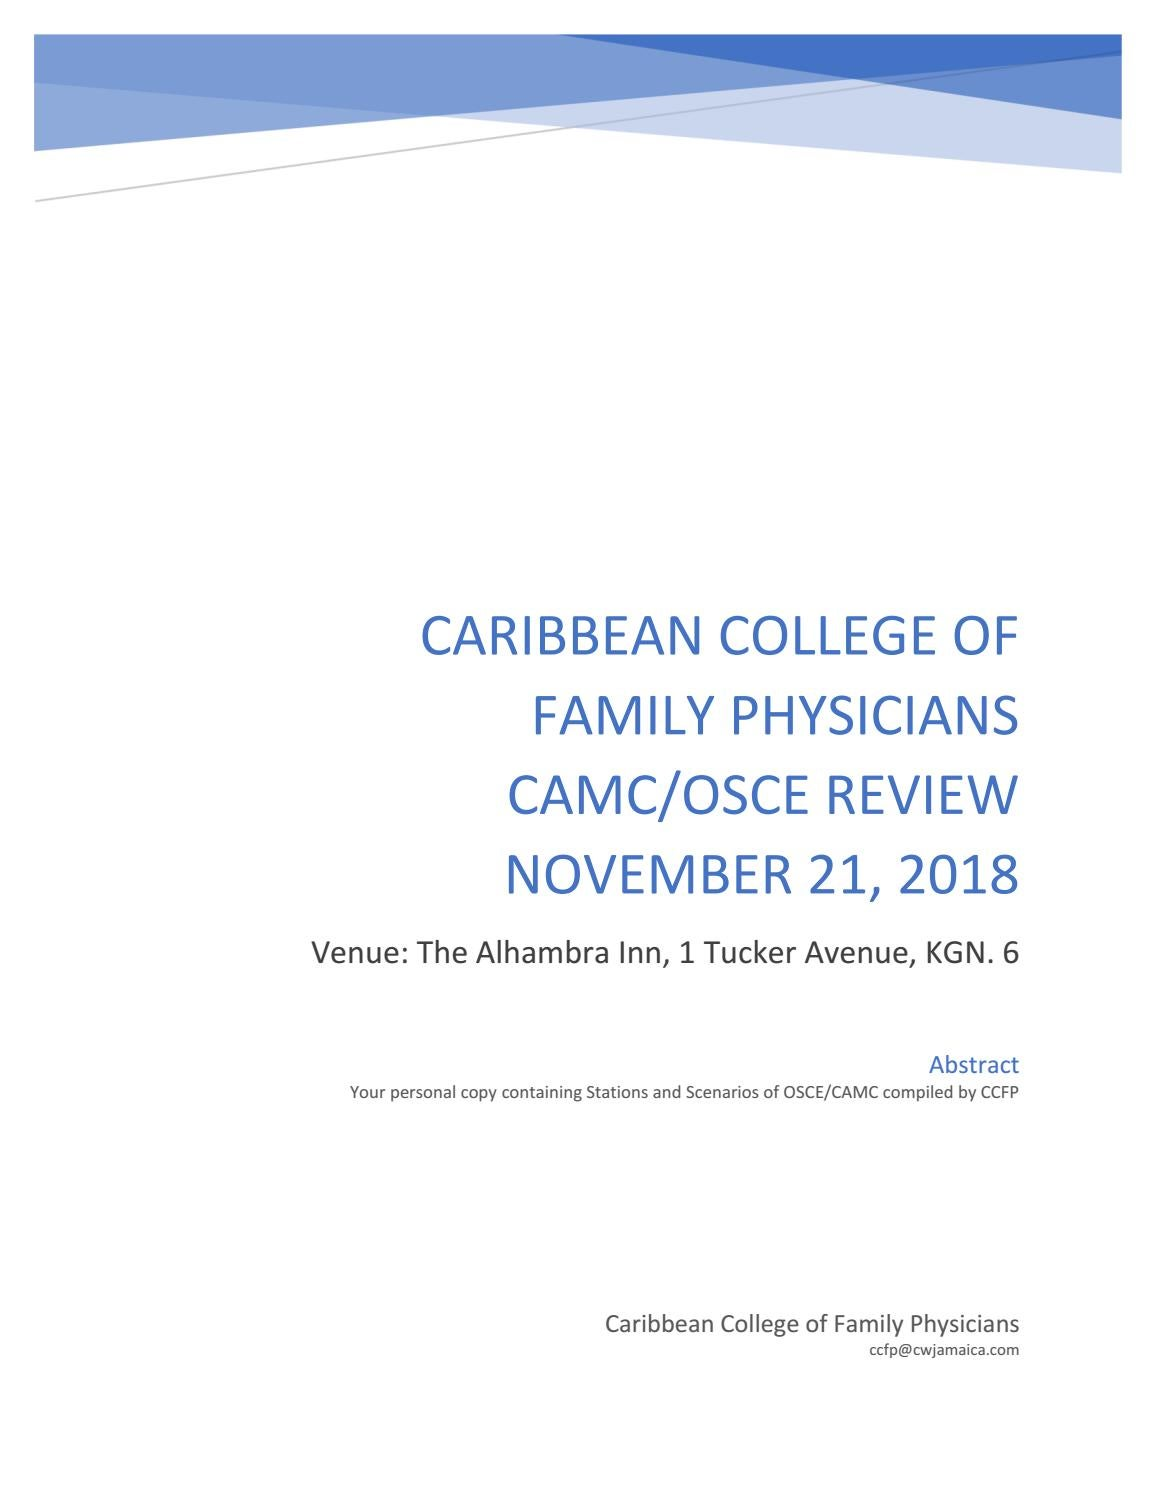 CAMC OSCE REVIEW STATIONS By Cwjamaica3 Issuu